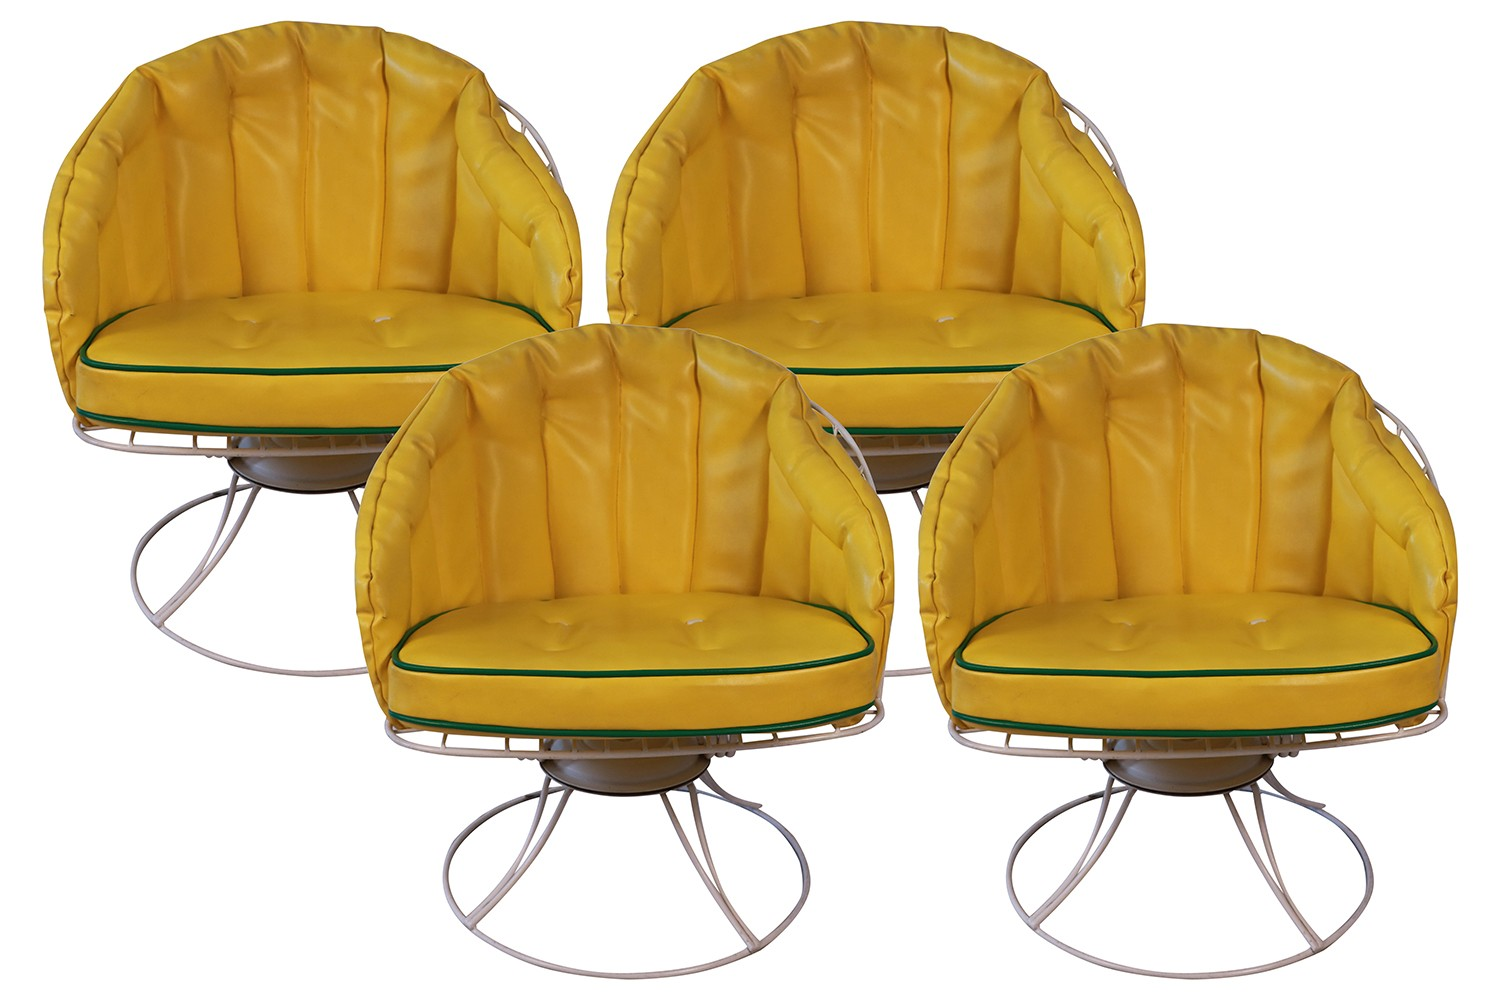 Four Vintage Mid Century Modern 1960s Homecrest Swivel Barrel